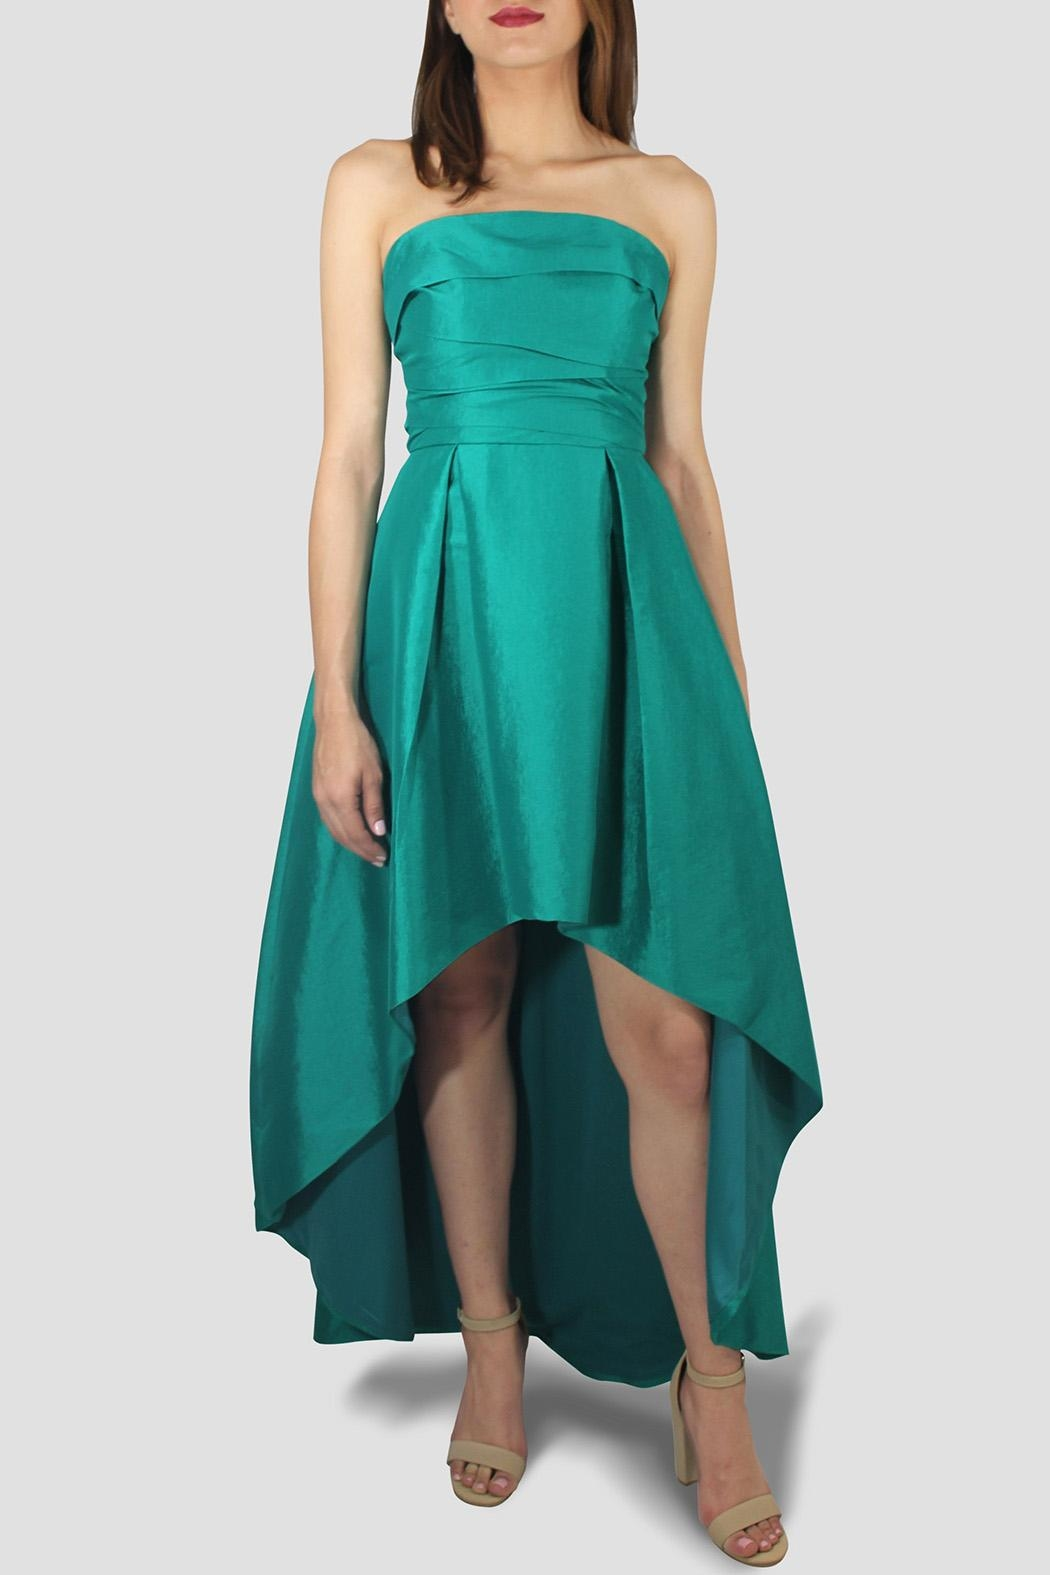 SoZu High-Low Draped Strapless - Front Cropped Image